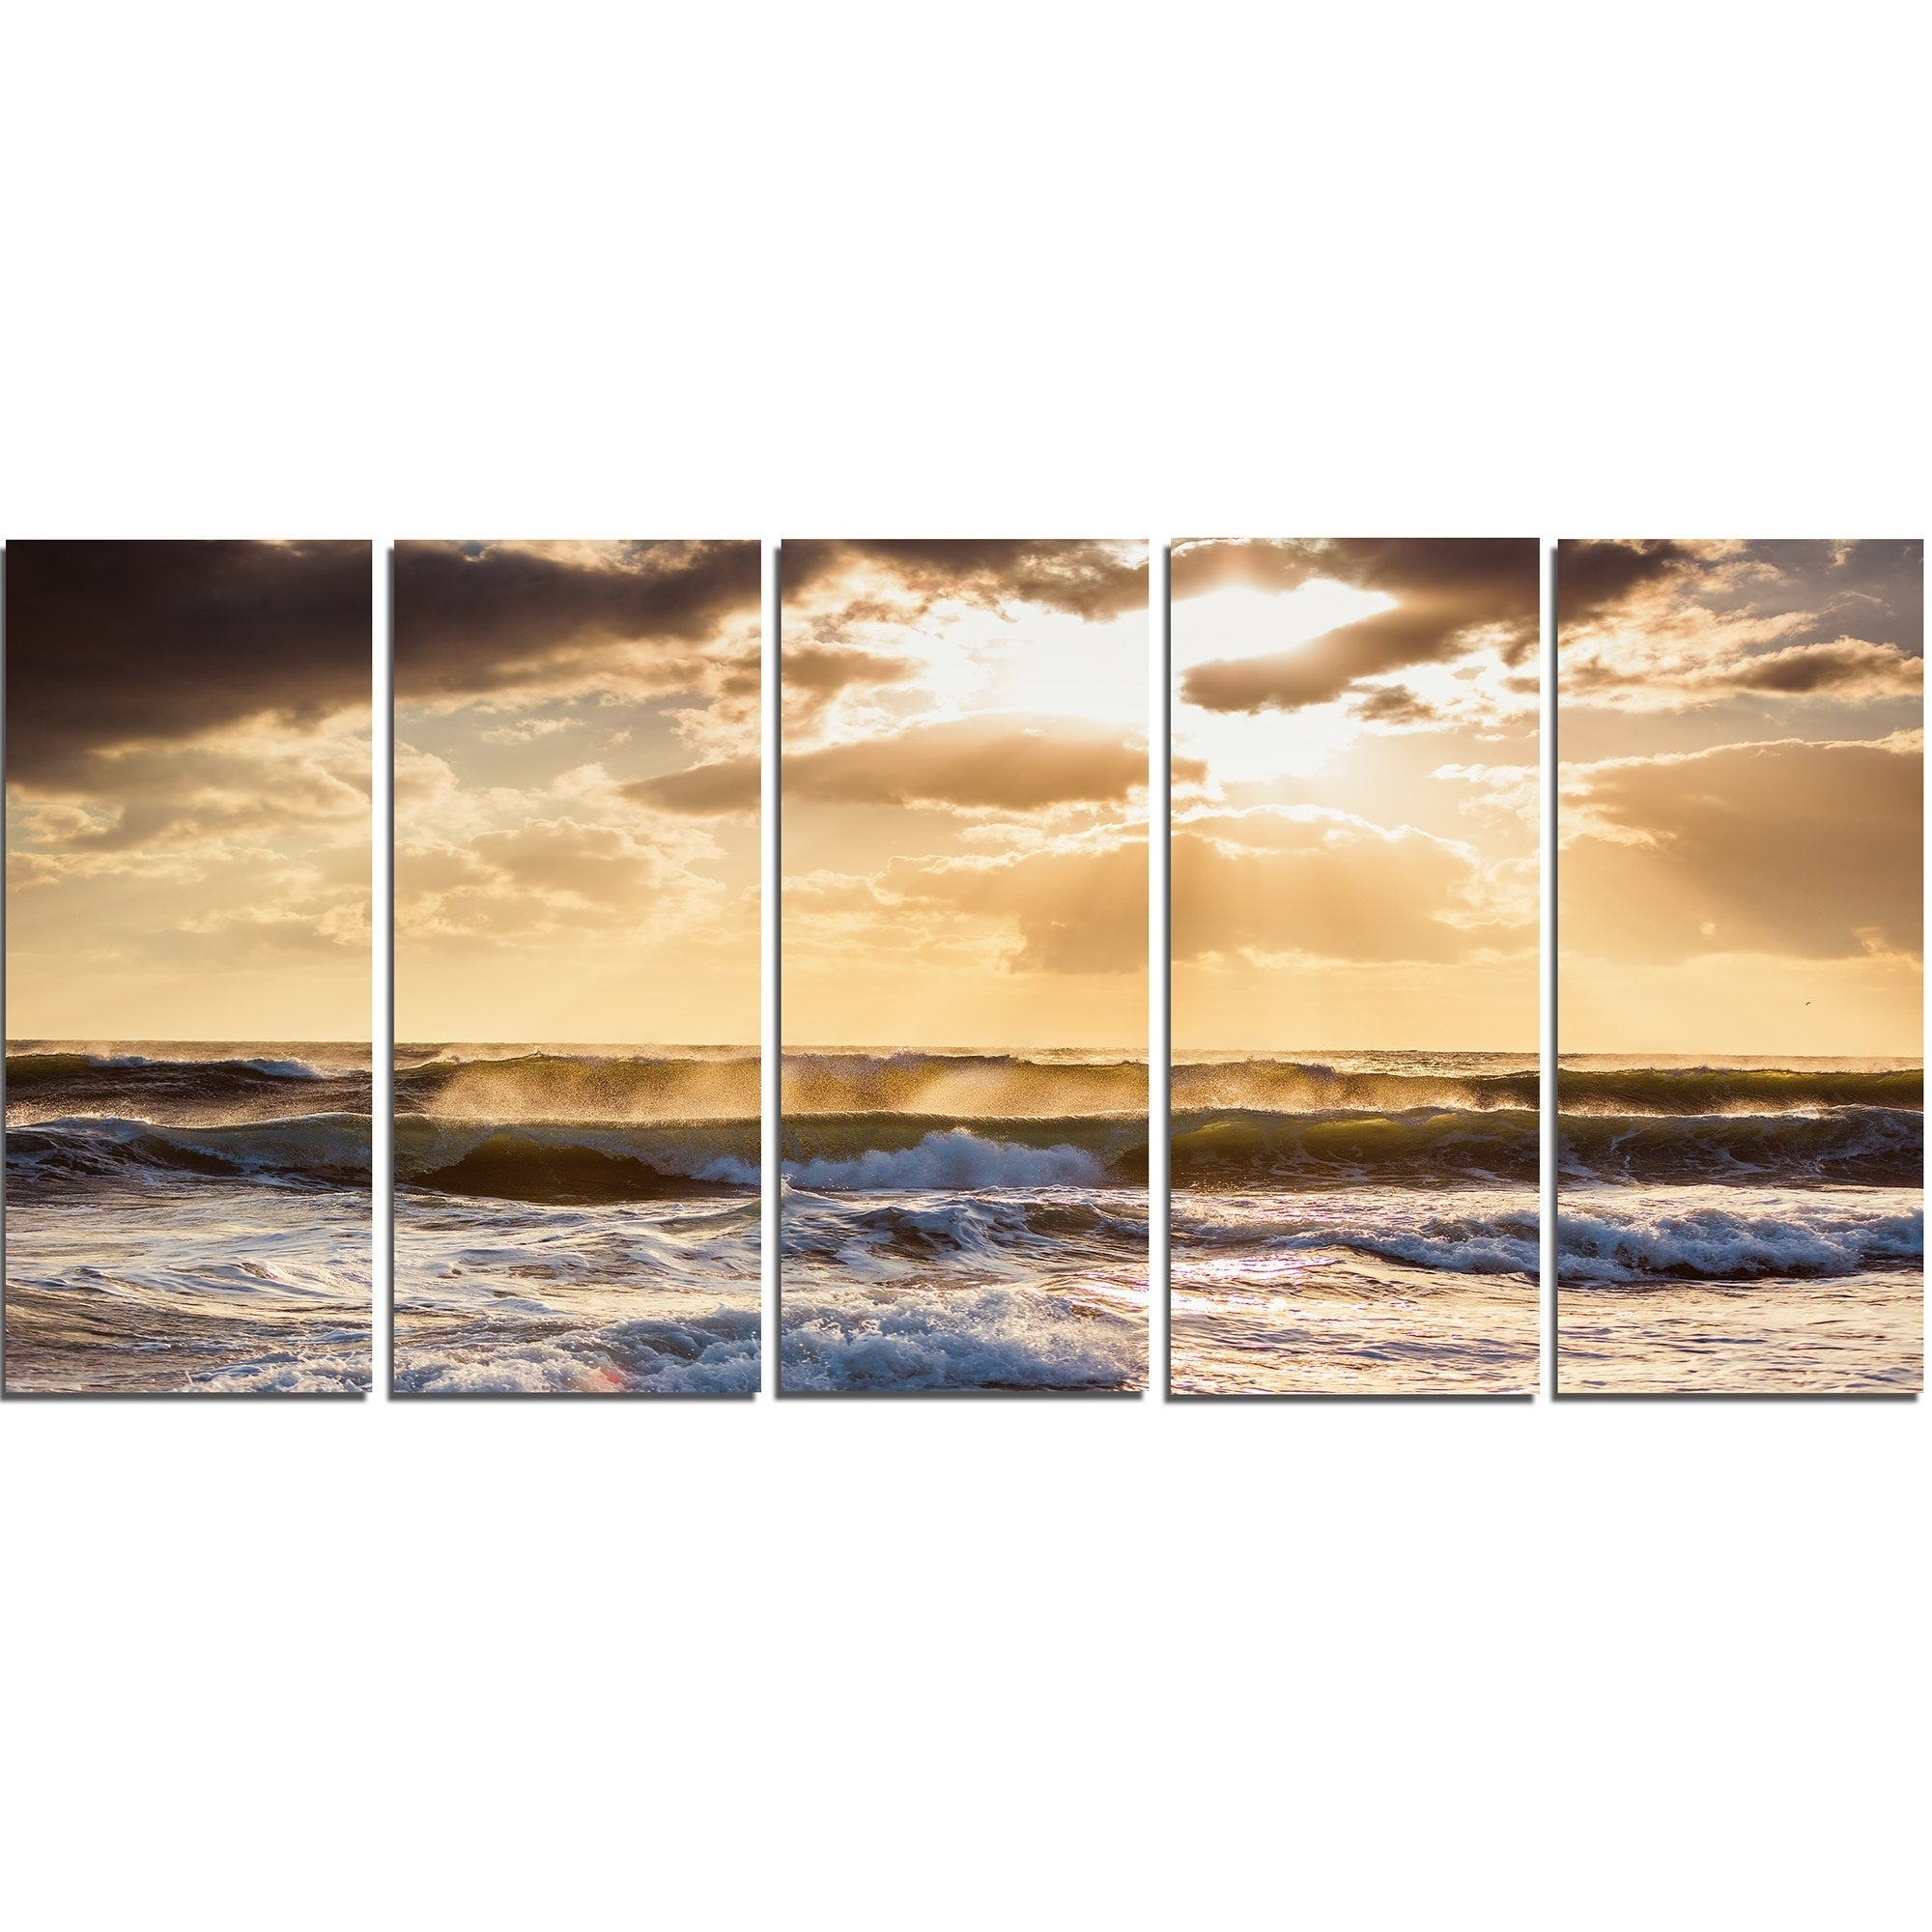 Awesome Beach Wall Art For Bedroom Photos - The Wall Art Decorations ...